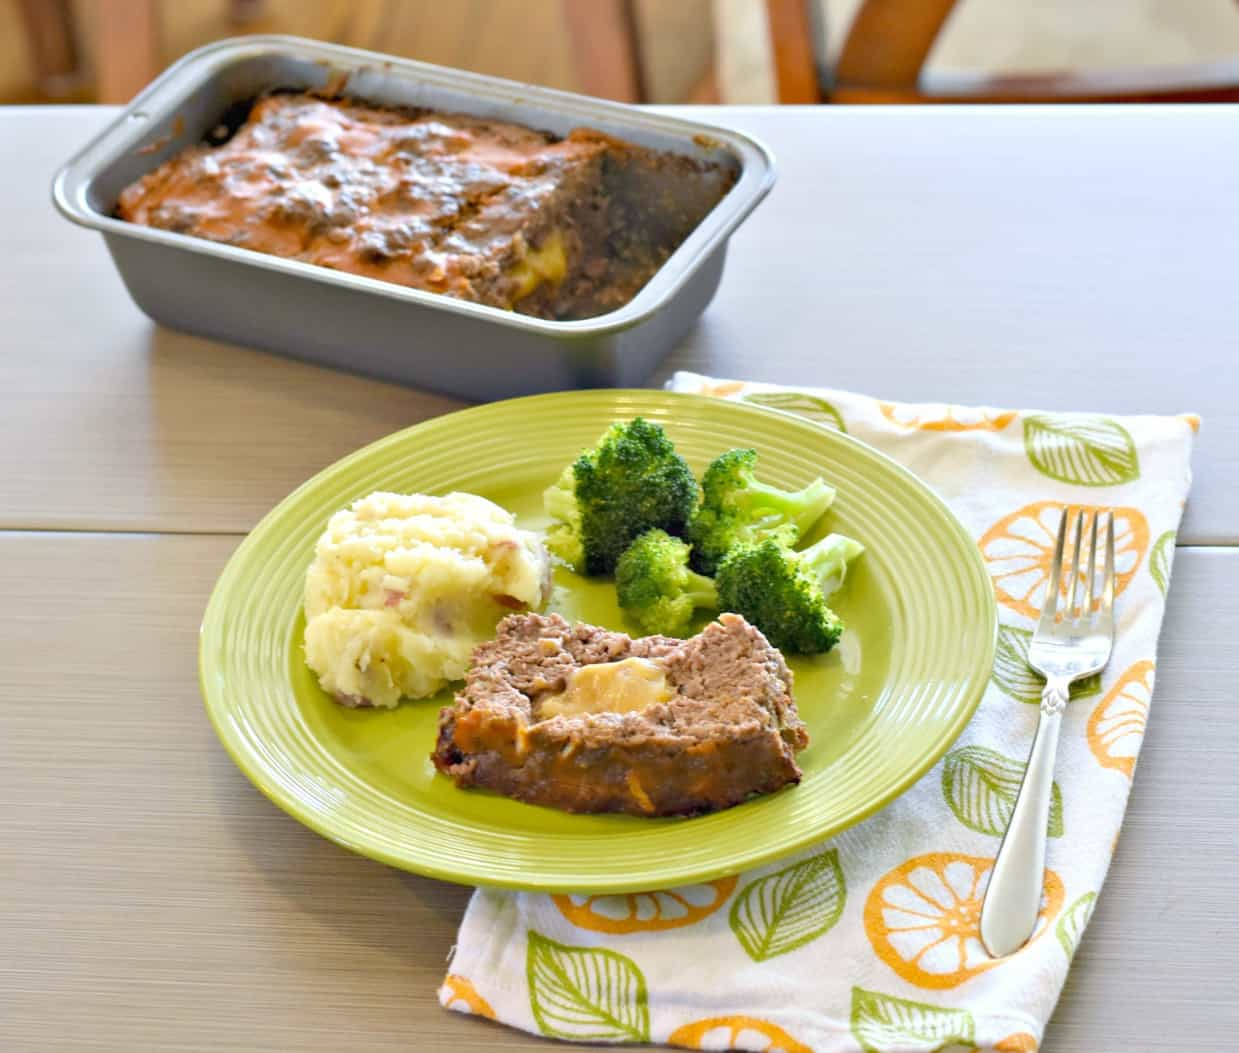 slice of cheeseburger meatloaf with mashed potatoes and broccoli